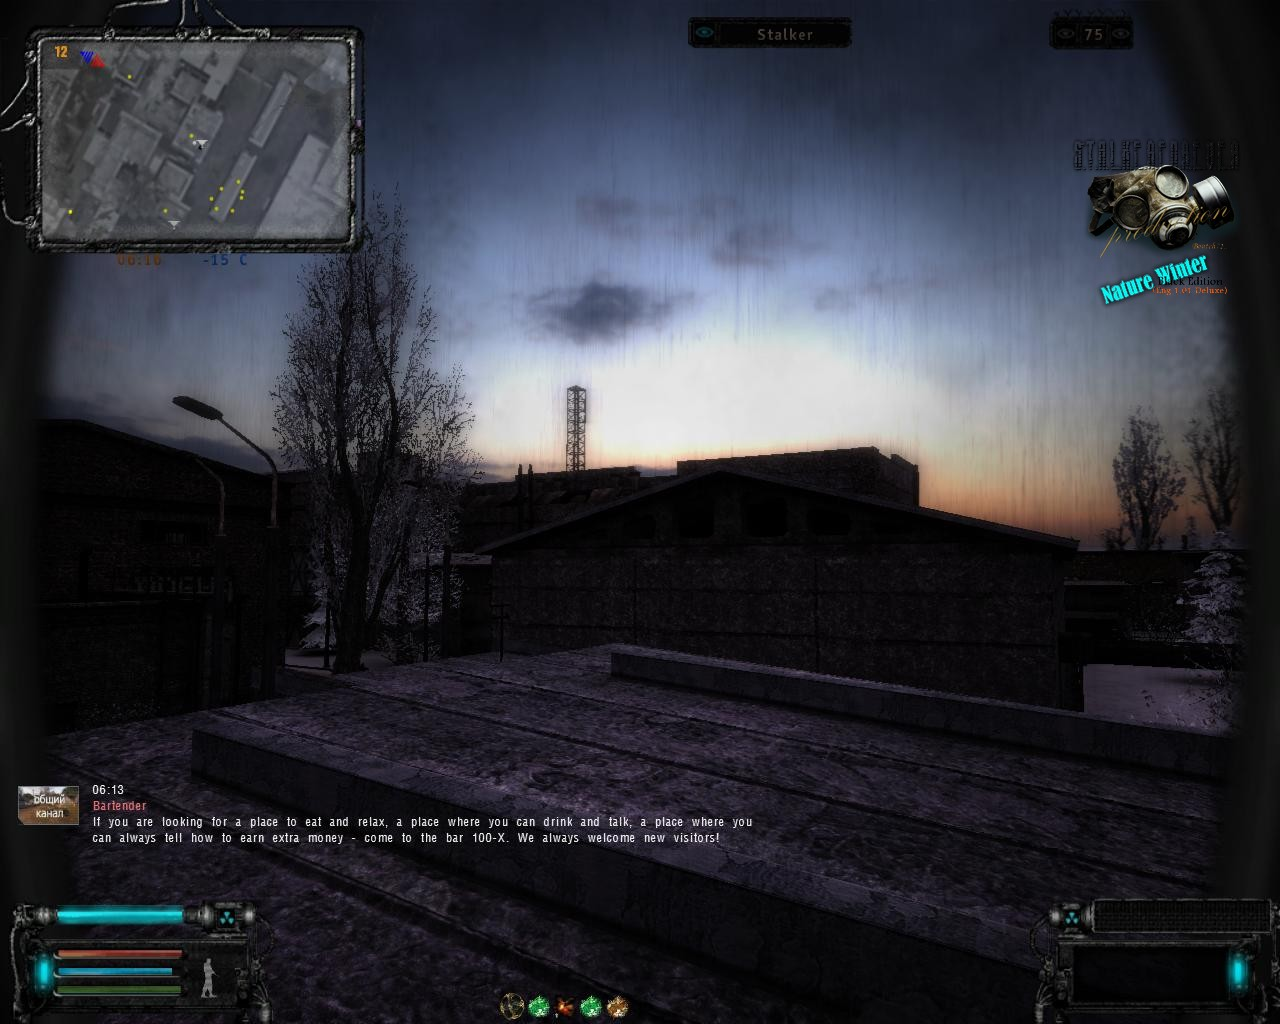 Nature Winter 2.3 Black Edition (eng 1.01 Deluxe) Images Gallery! Serie:1# Ss_bou86